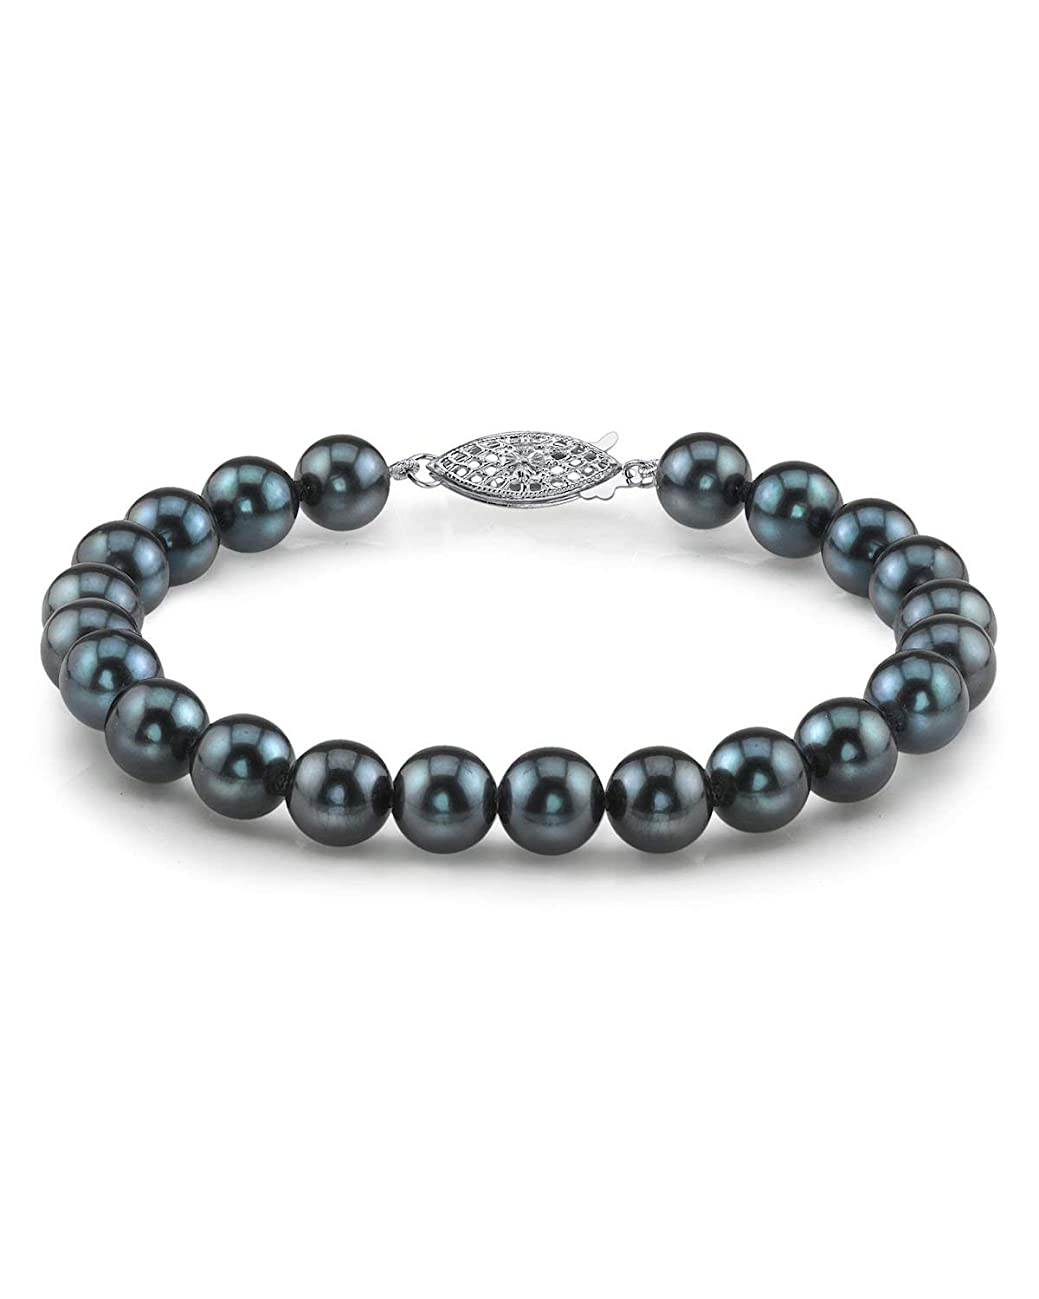 THE PEARL SOURCE 14K Gold 8-8.5mm AAA Quality Round Black Japanese Akoya Saltwater Cultured Pearl Bracelet for Women